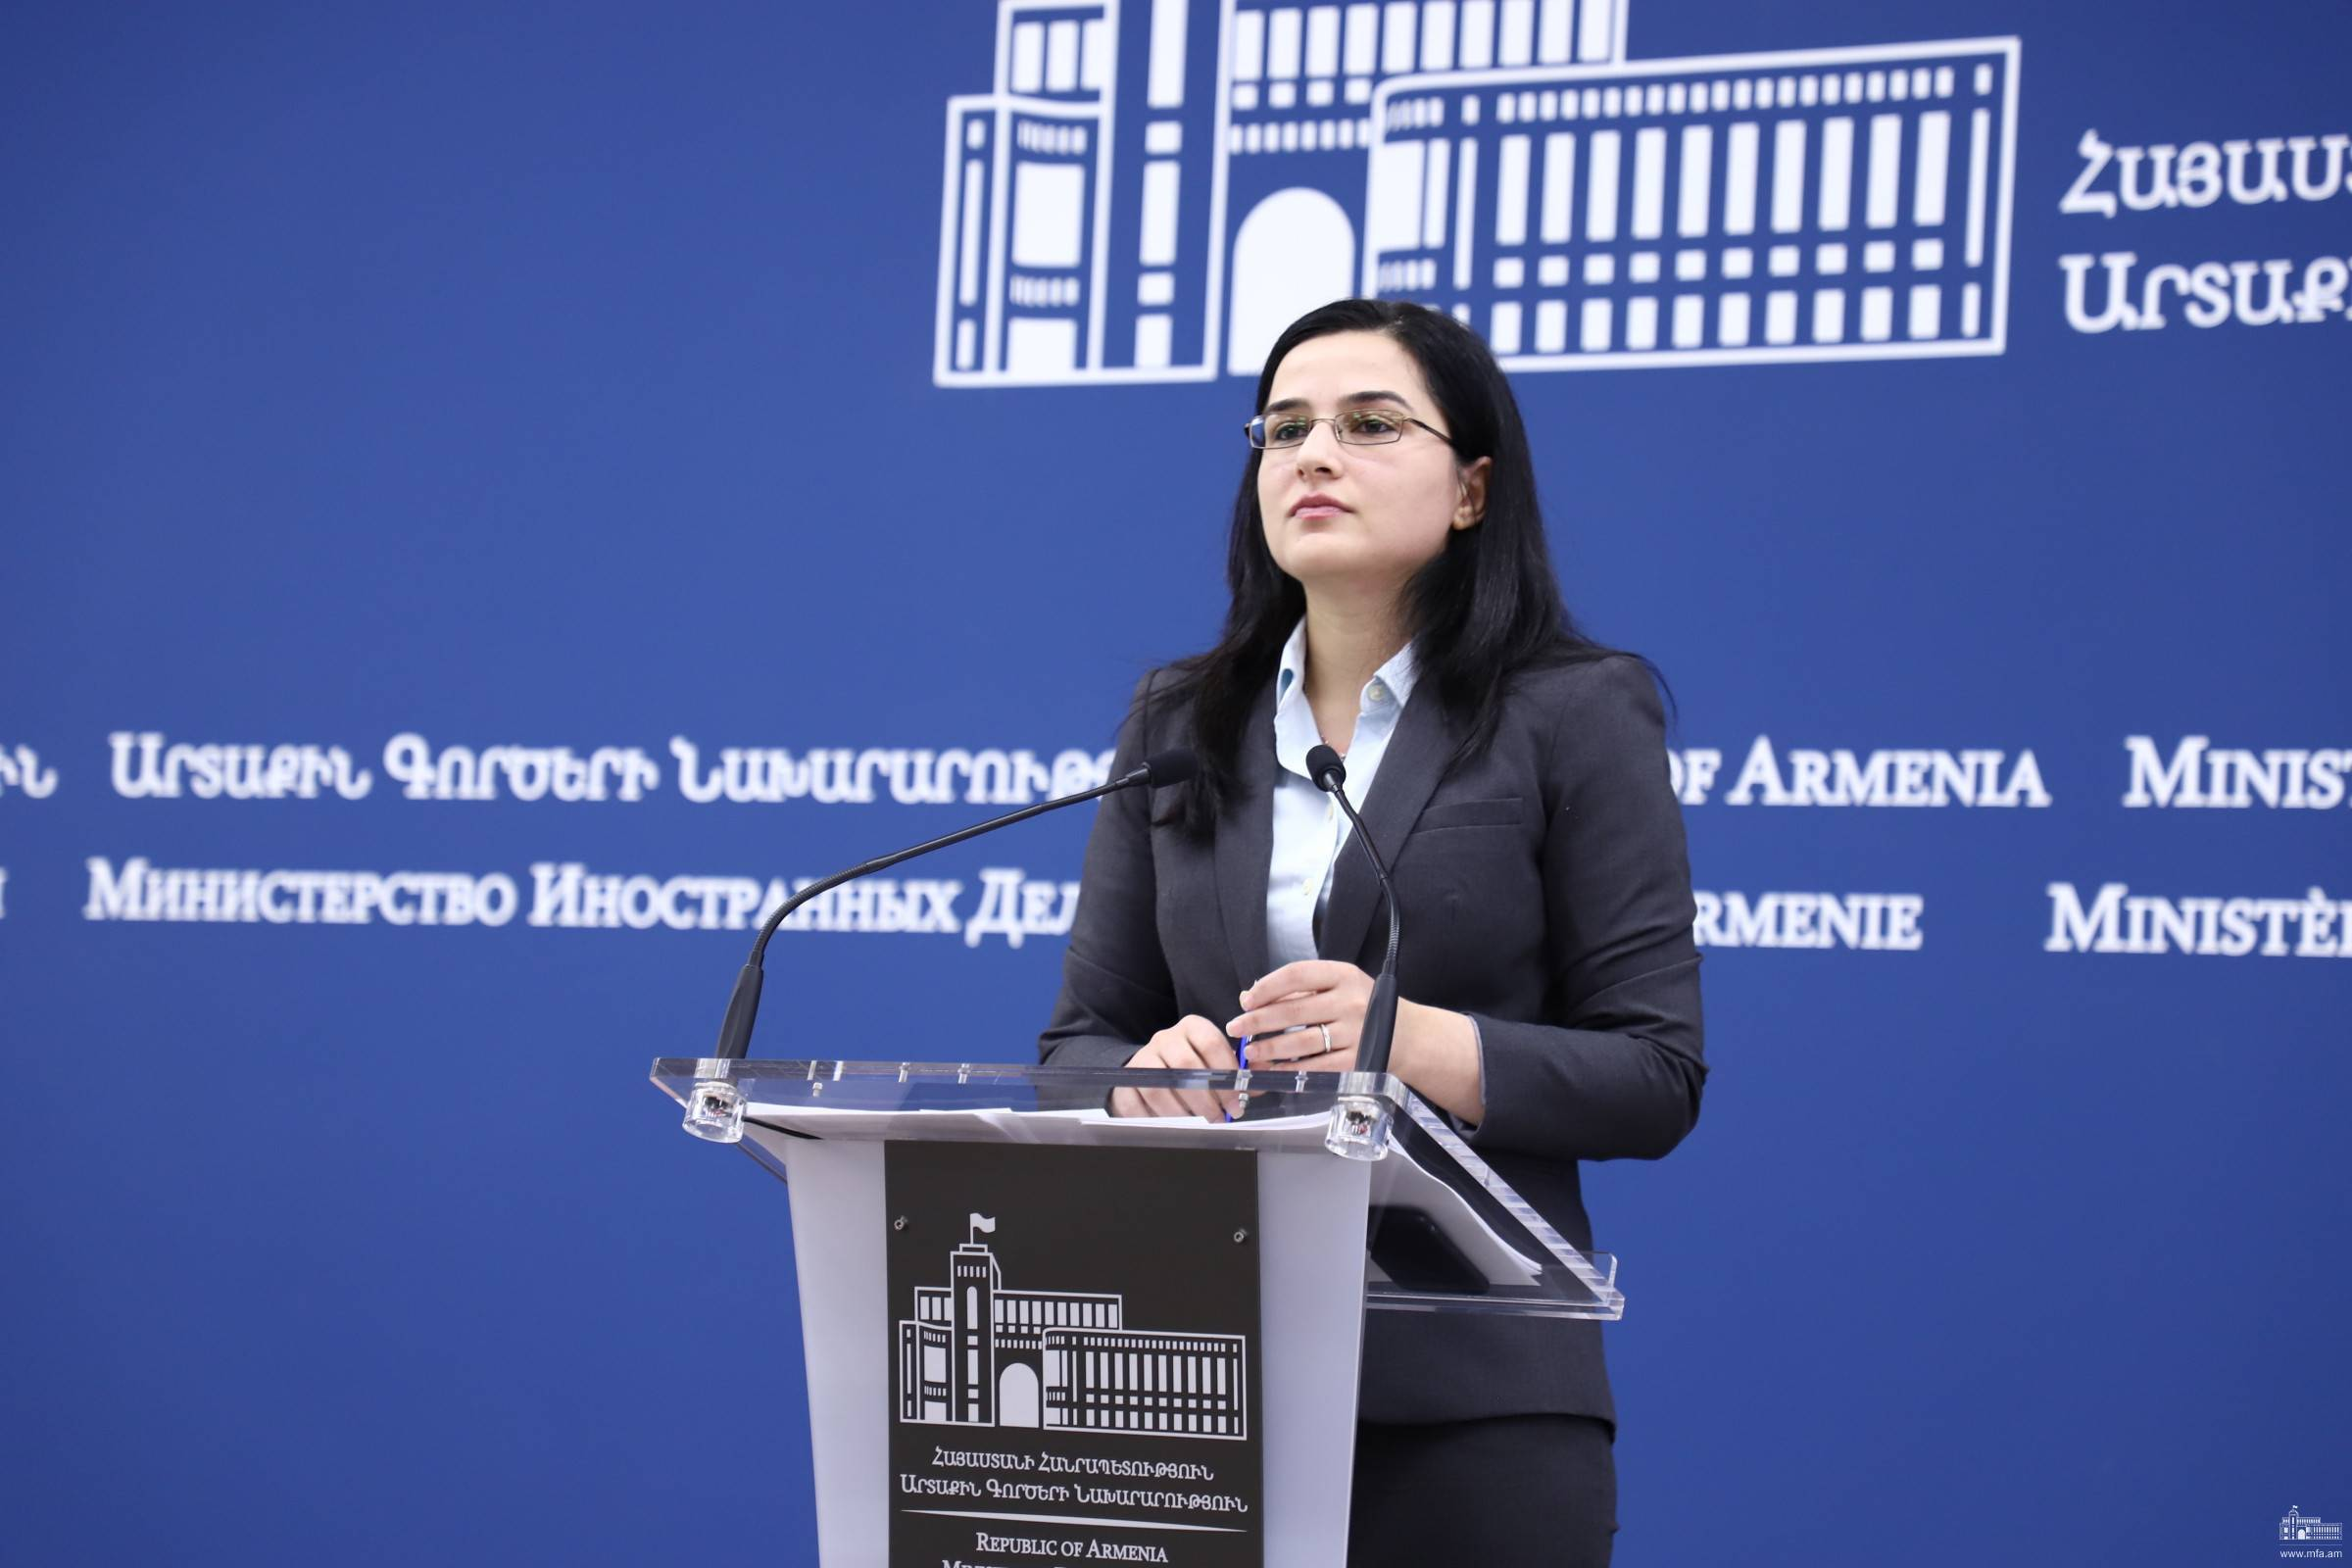 Response by the Spokesperson of the Foreign Ministry of Armenia to the question regarding the parliamentary elections held in Azerbaijan